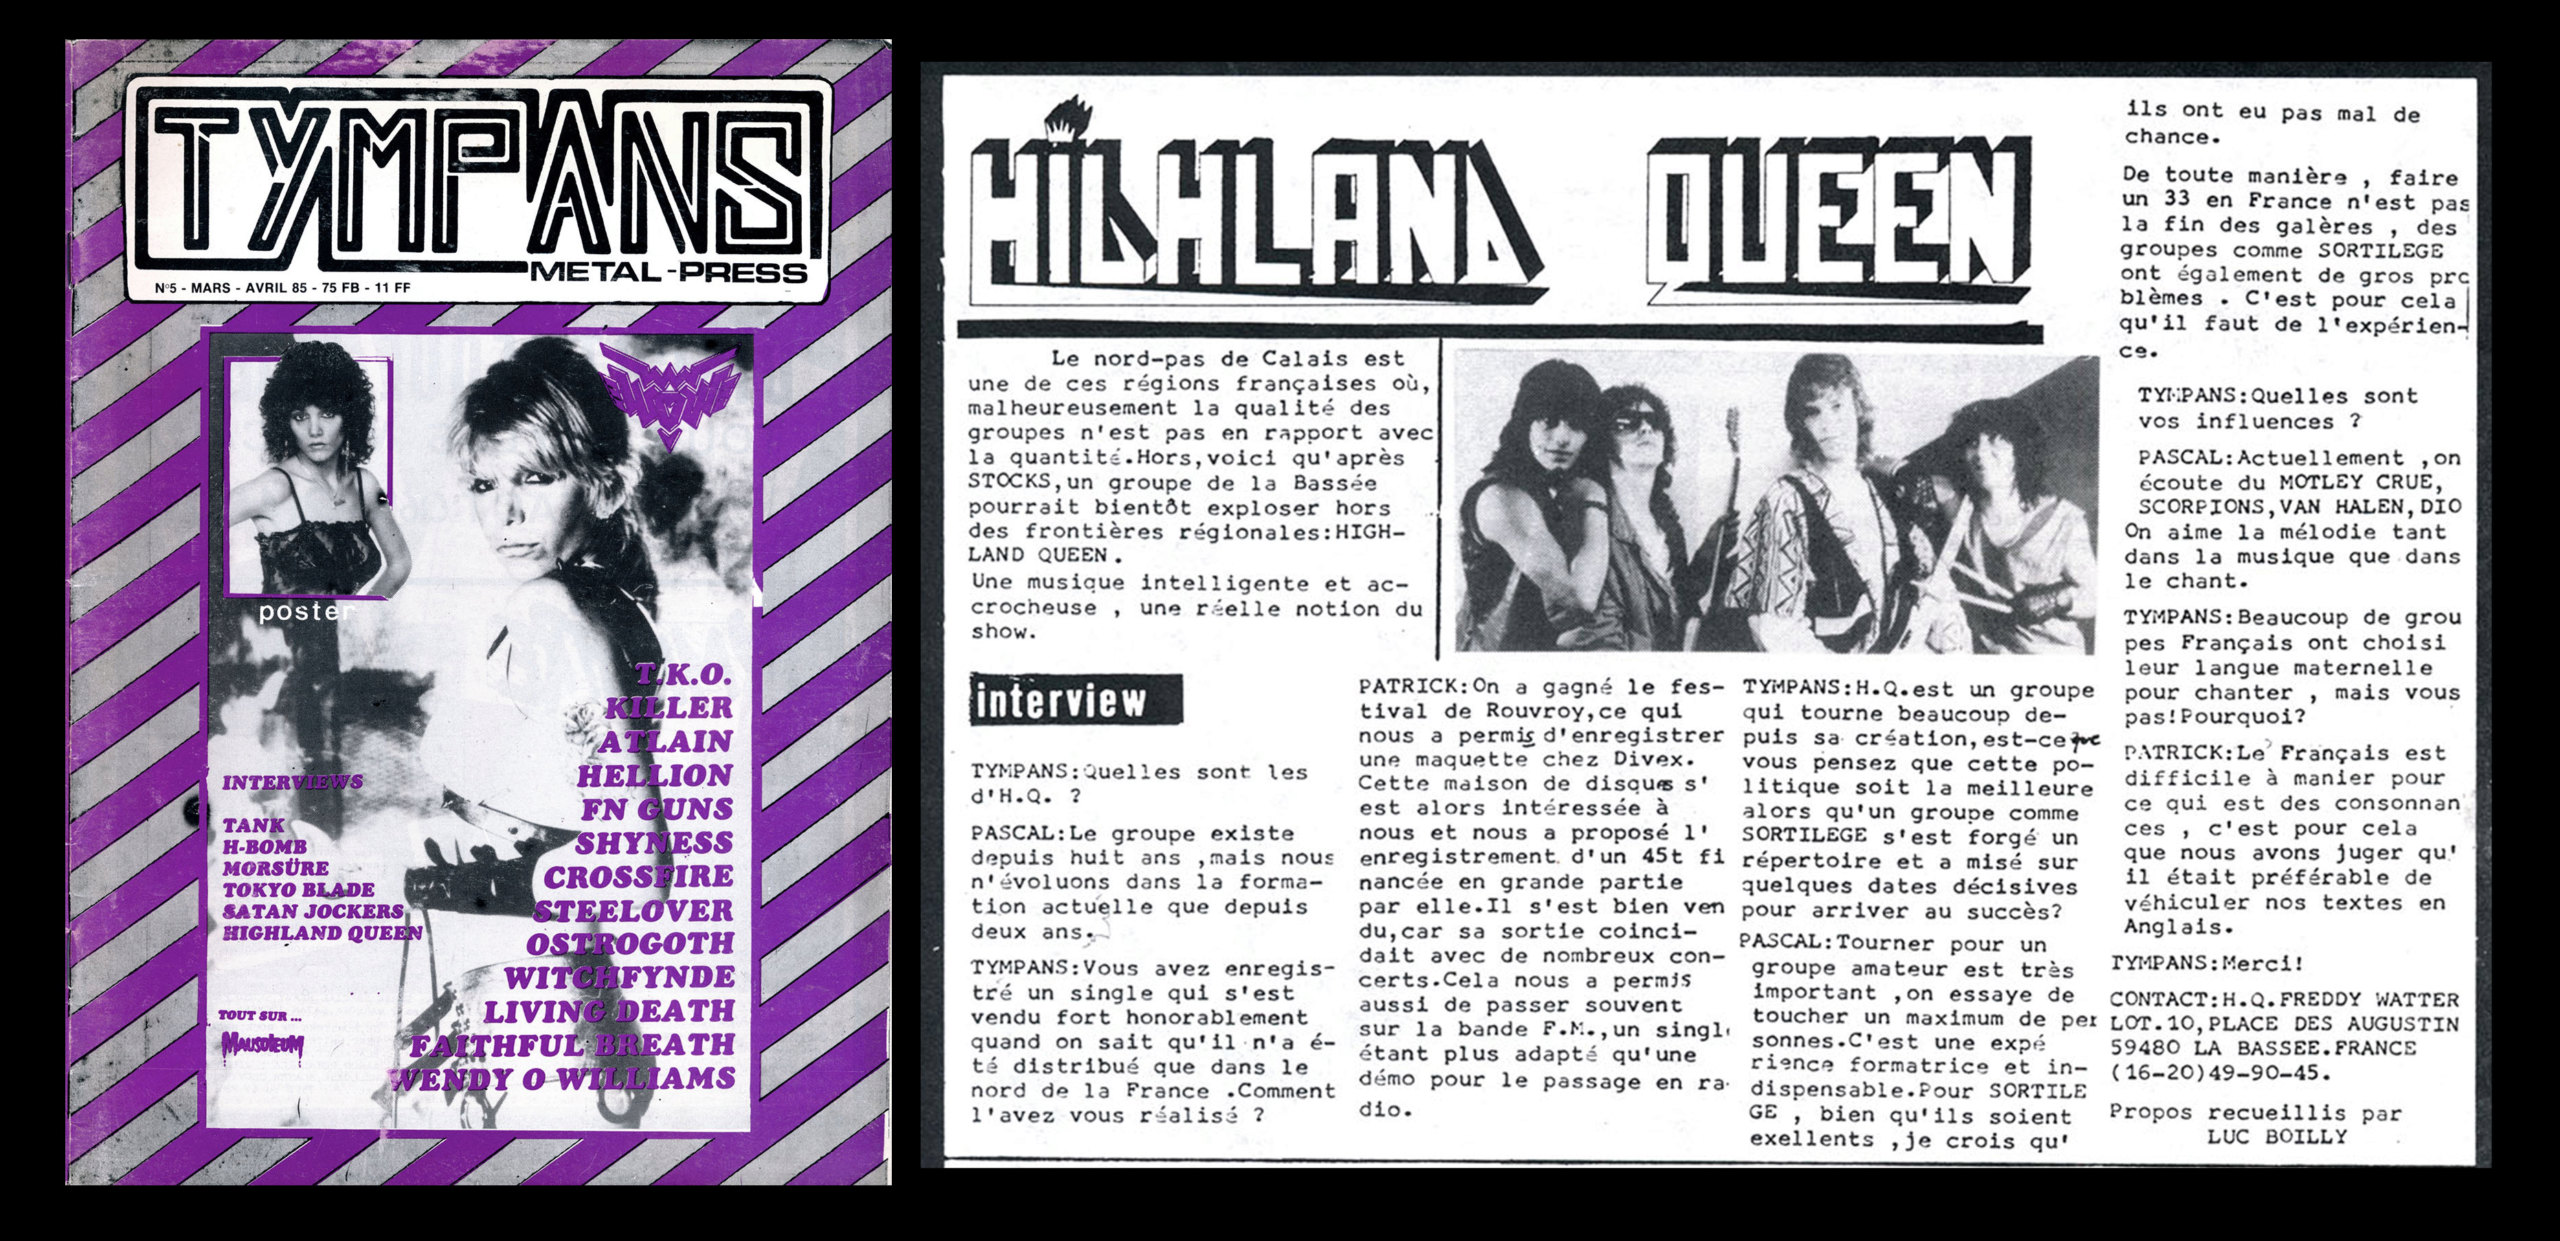 HIGHLAND QUEEN dans le fanzine TYMPANS (Mars/Avril 1985) Highla10